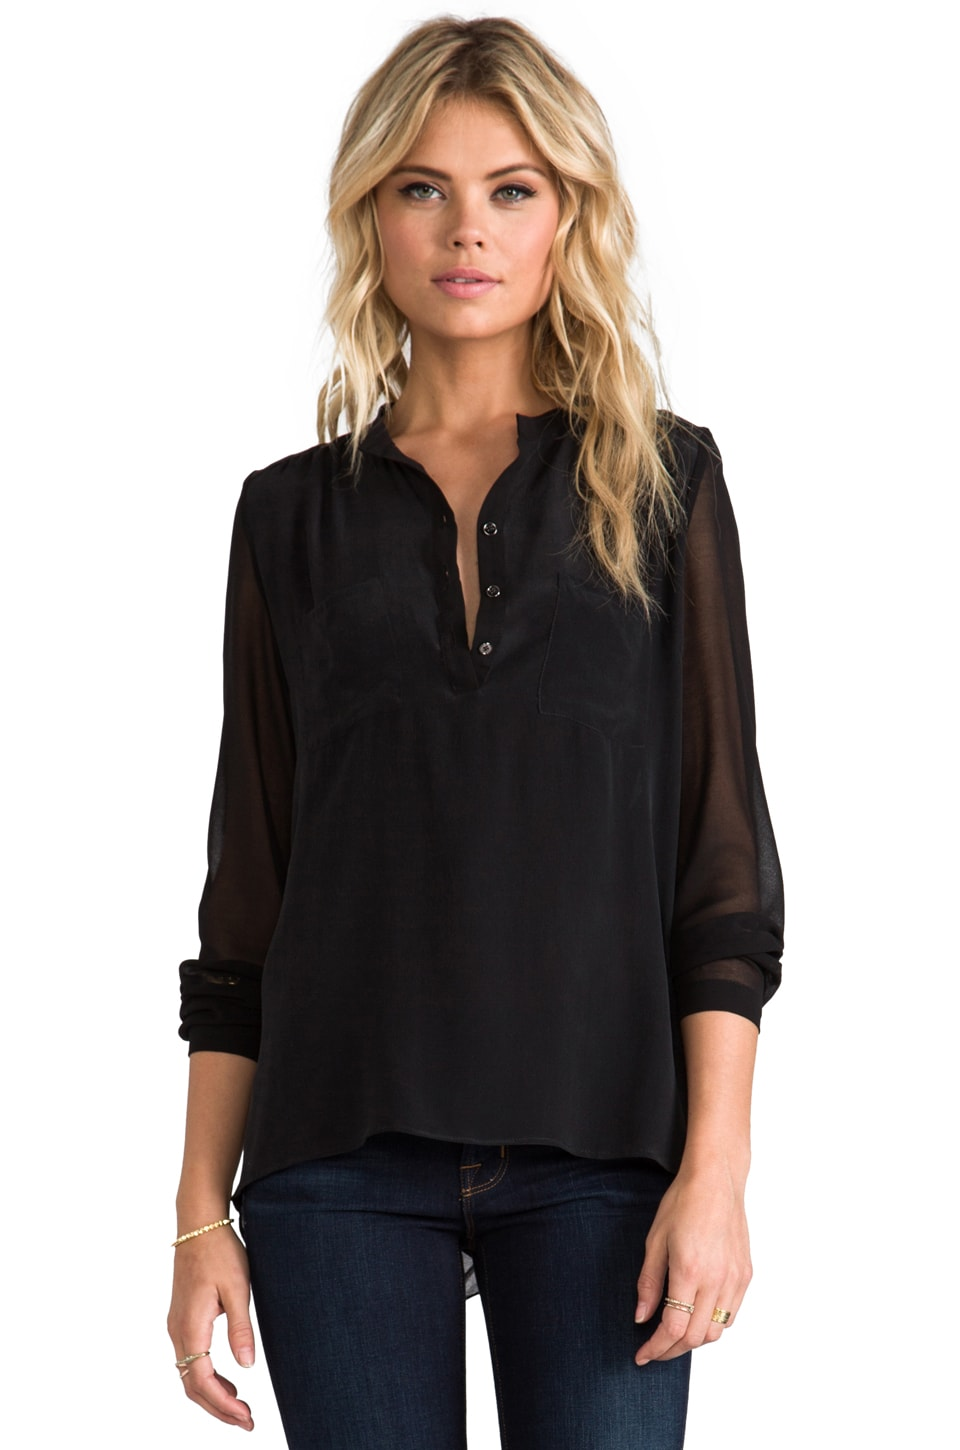 heartLoom Victoria Top in Black